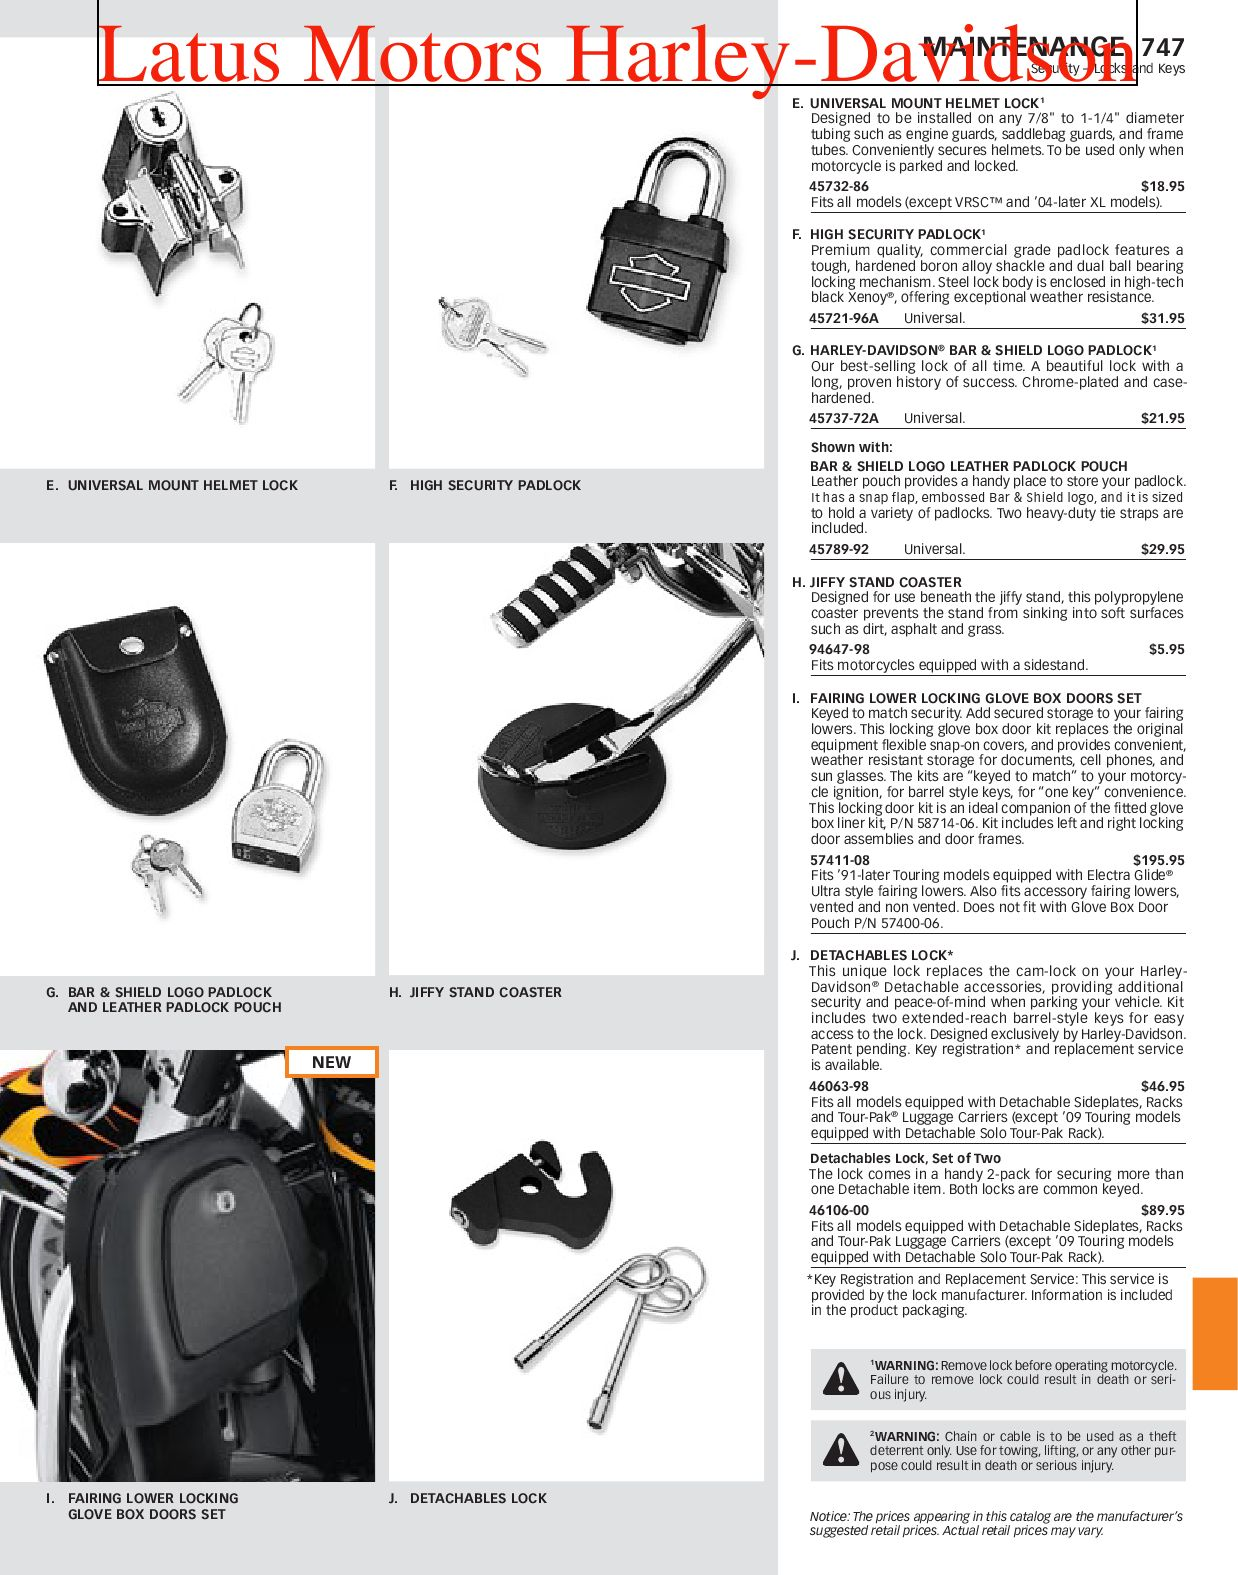 Harley-Davidson Security and Maintenance Catalog by Harley